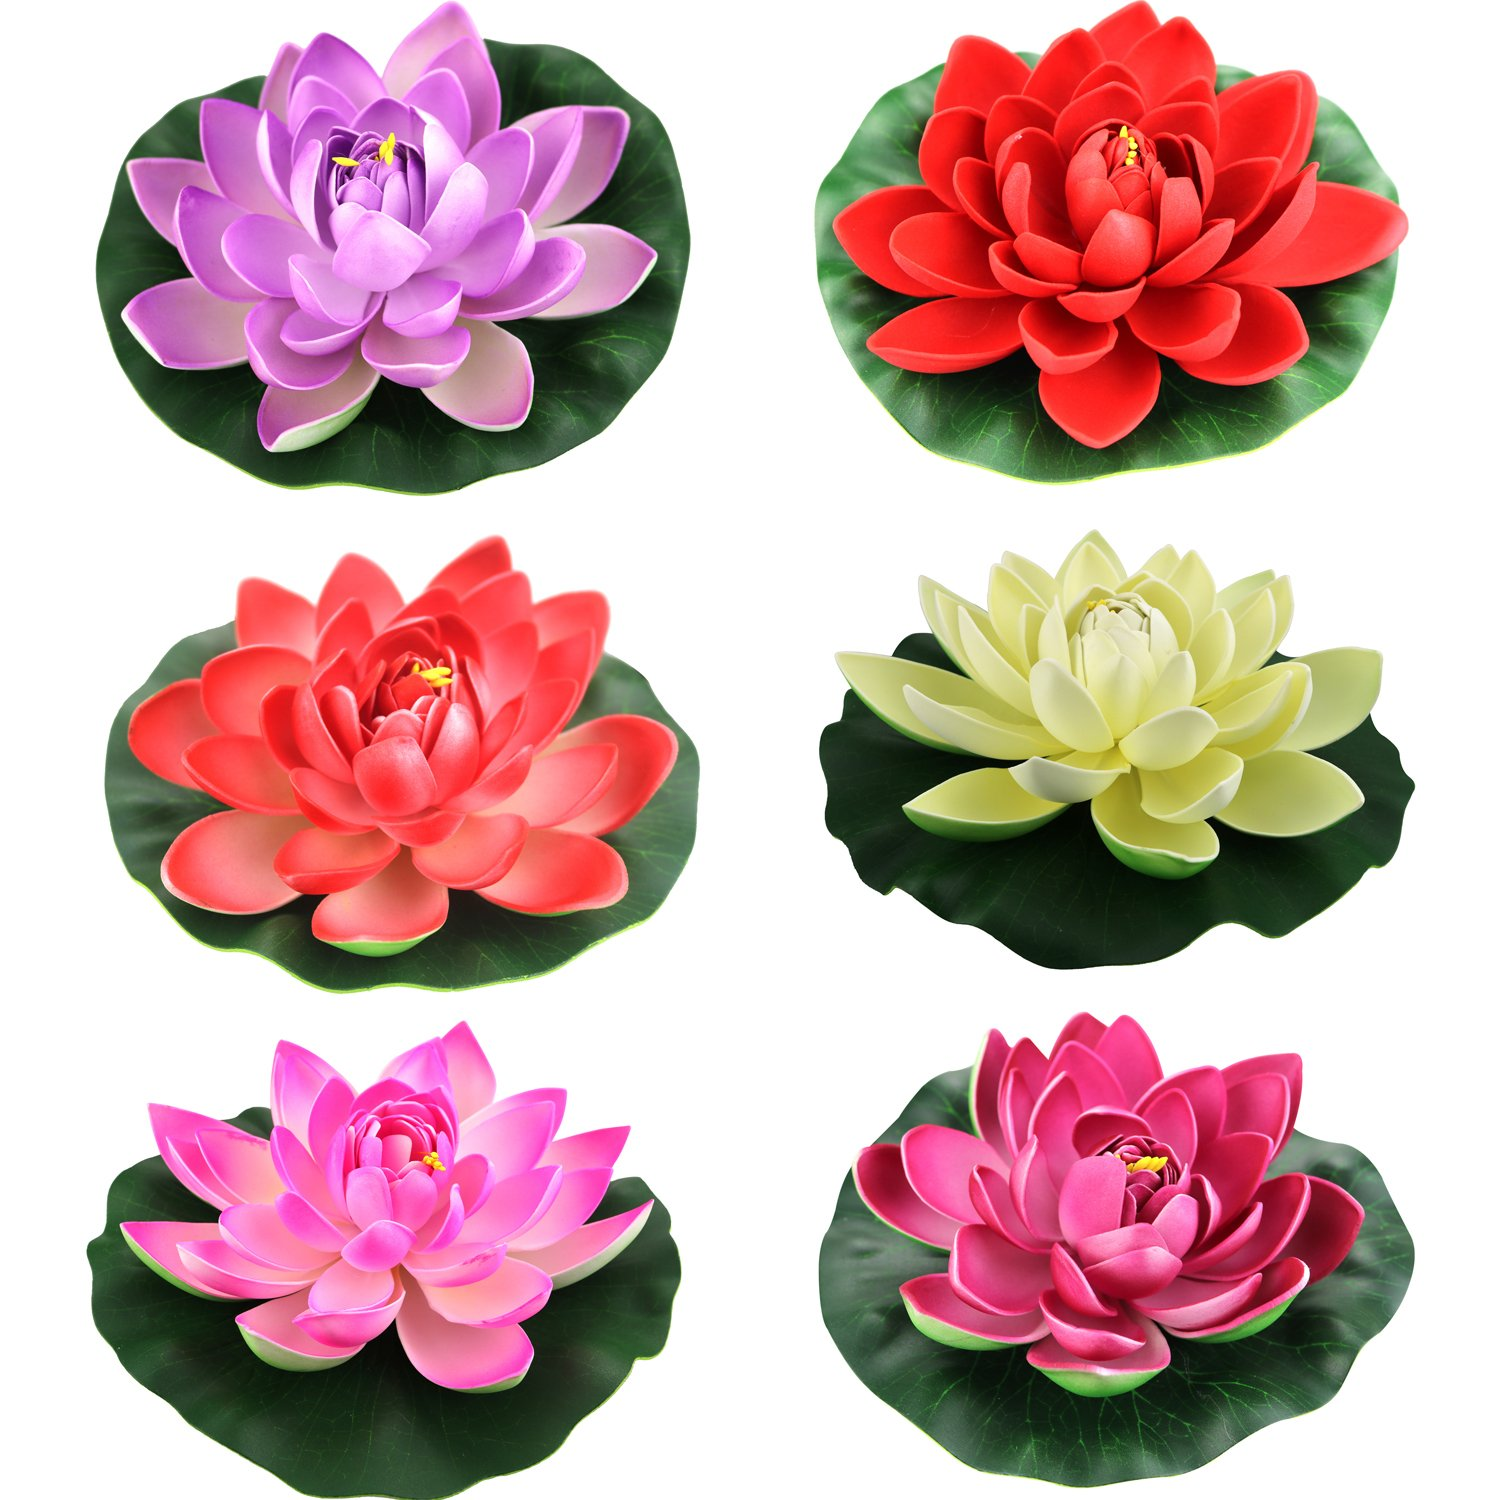 Amazon.com : Lightingsky Artificial Floating Foam Lotus Flower Pond ...